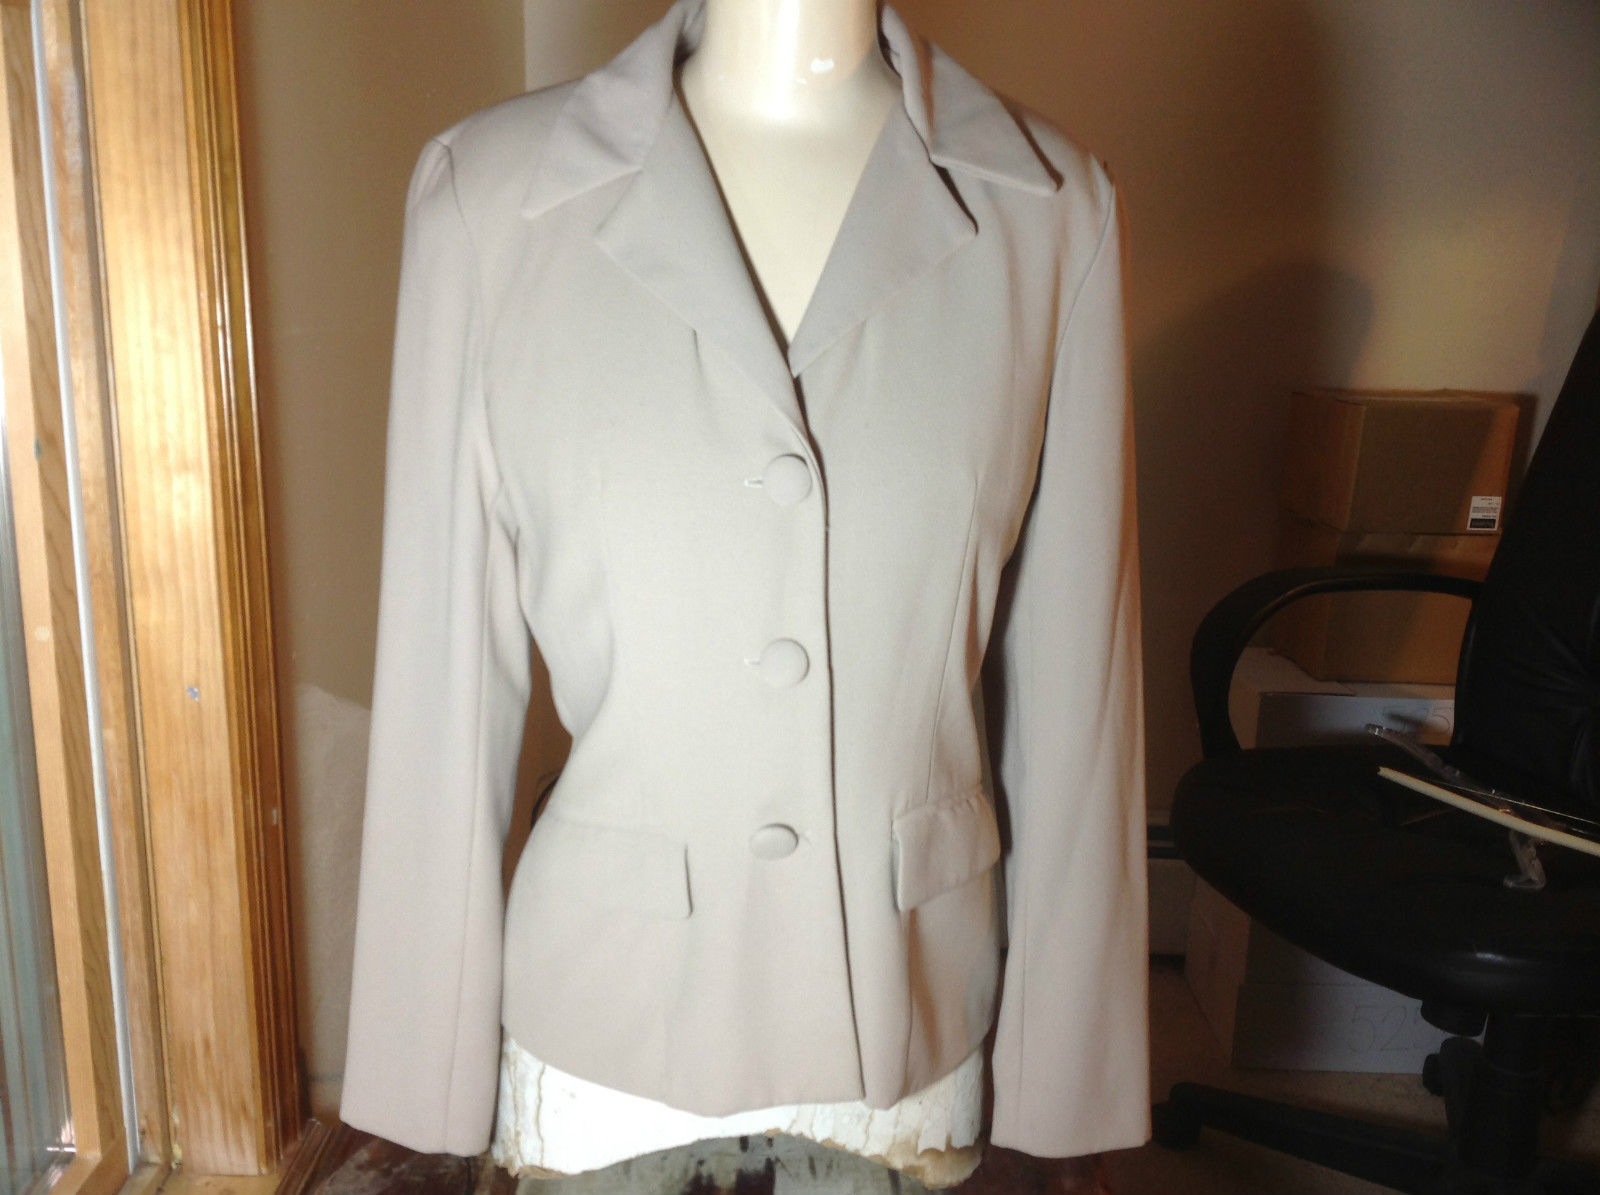 Elegant Matisse Studio Skirt and Blazer Suit Tan Blazer Size 6 Skirt Size 5 to 6